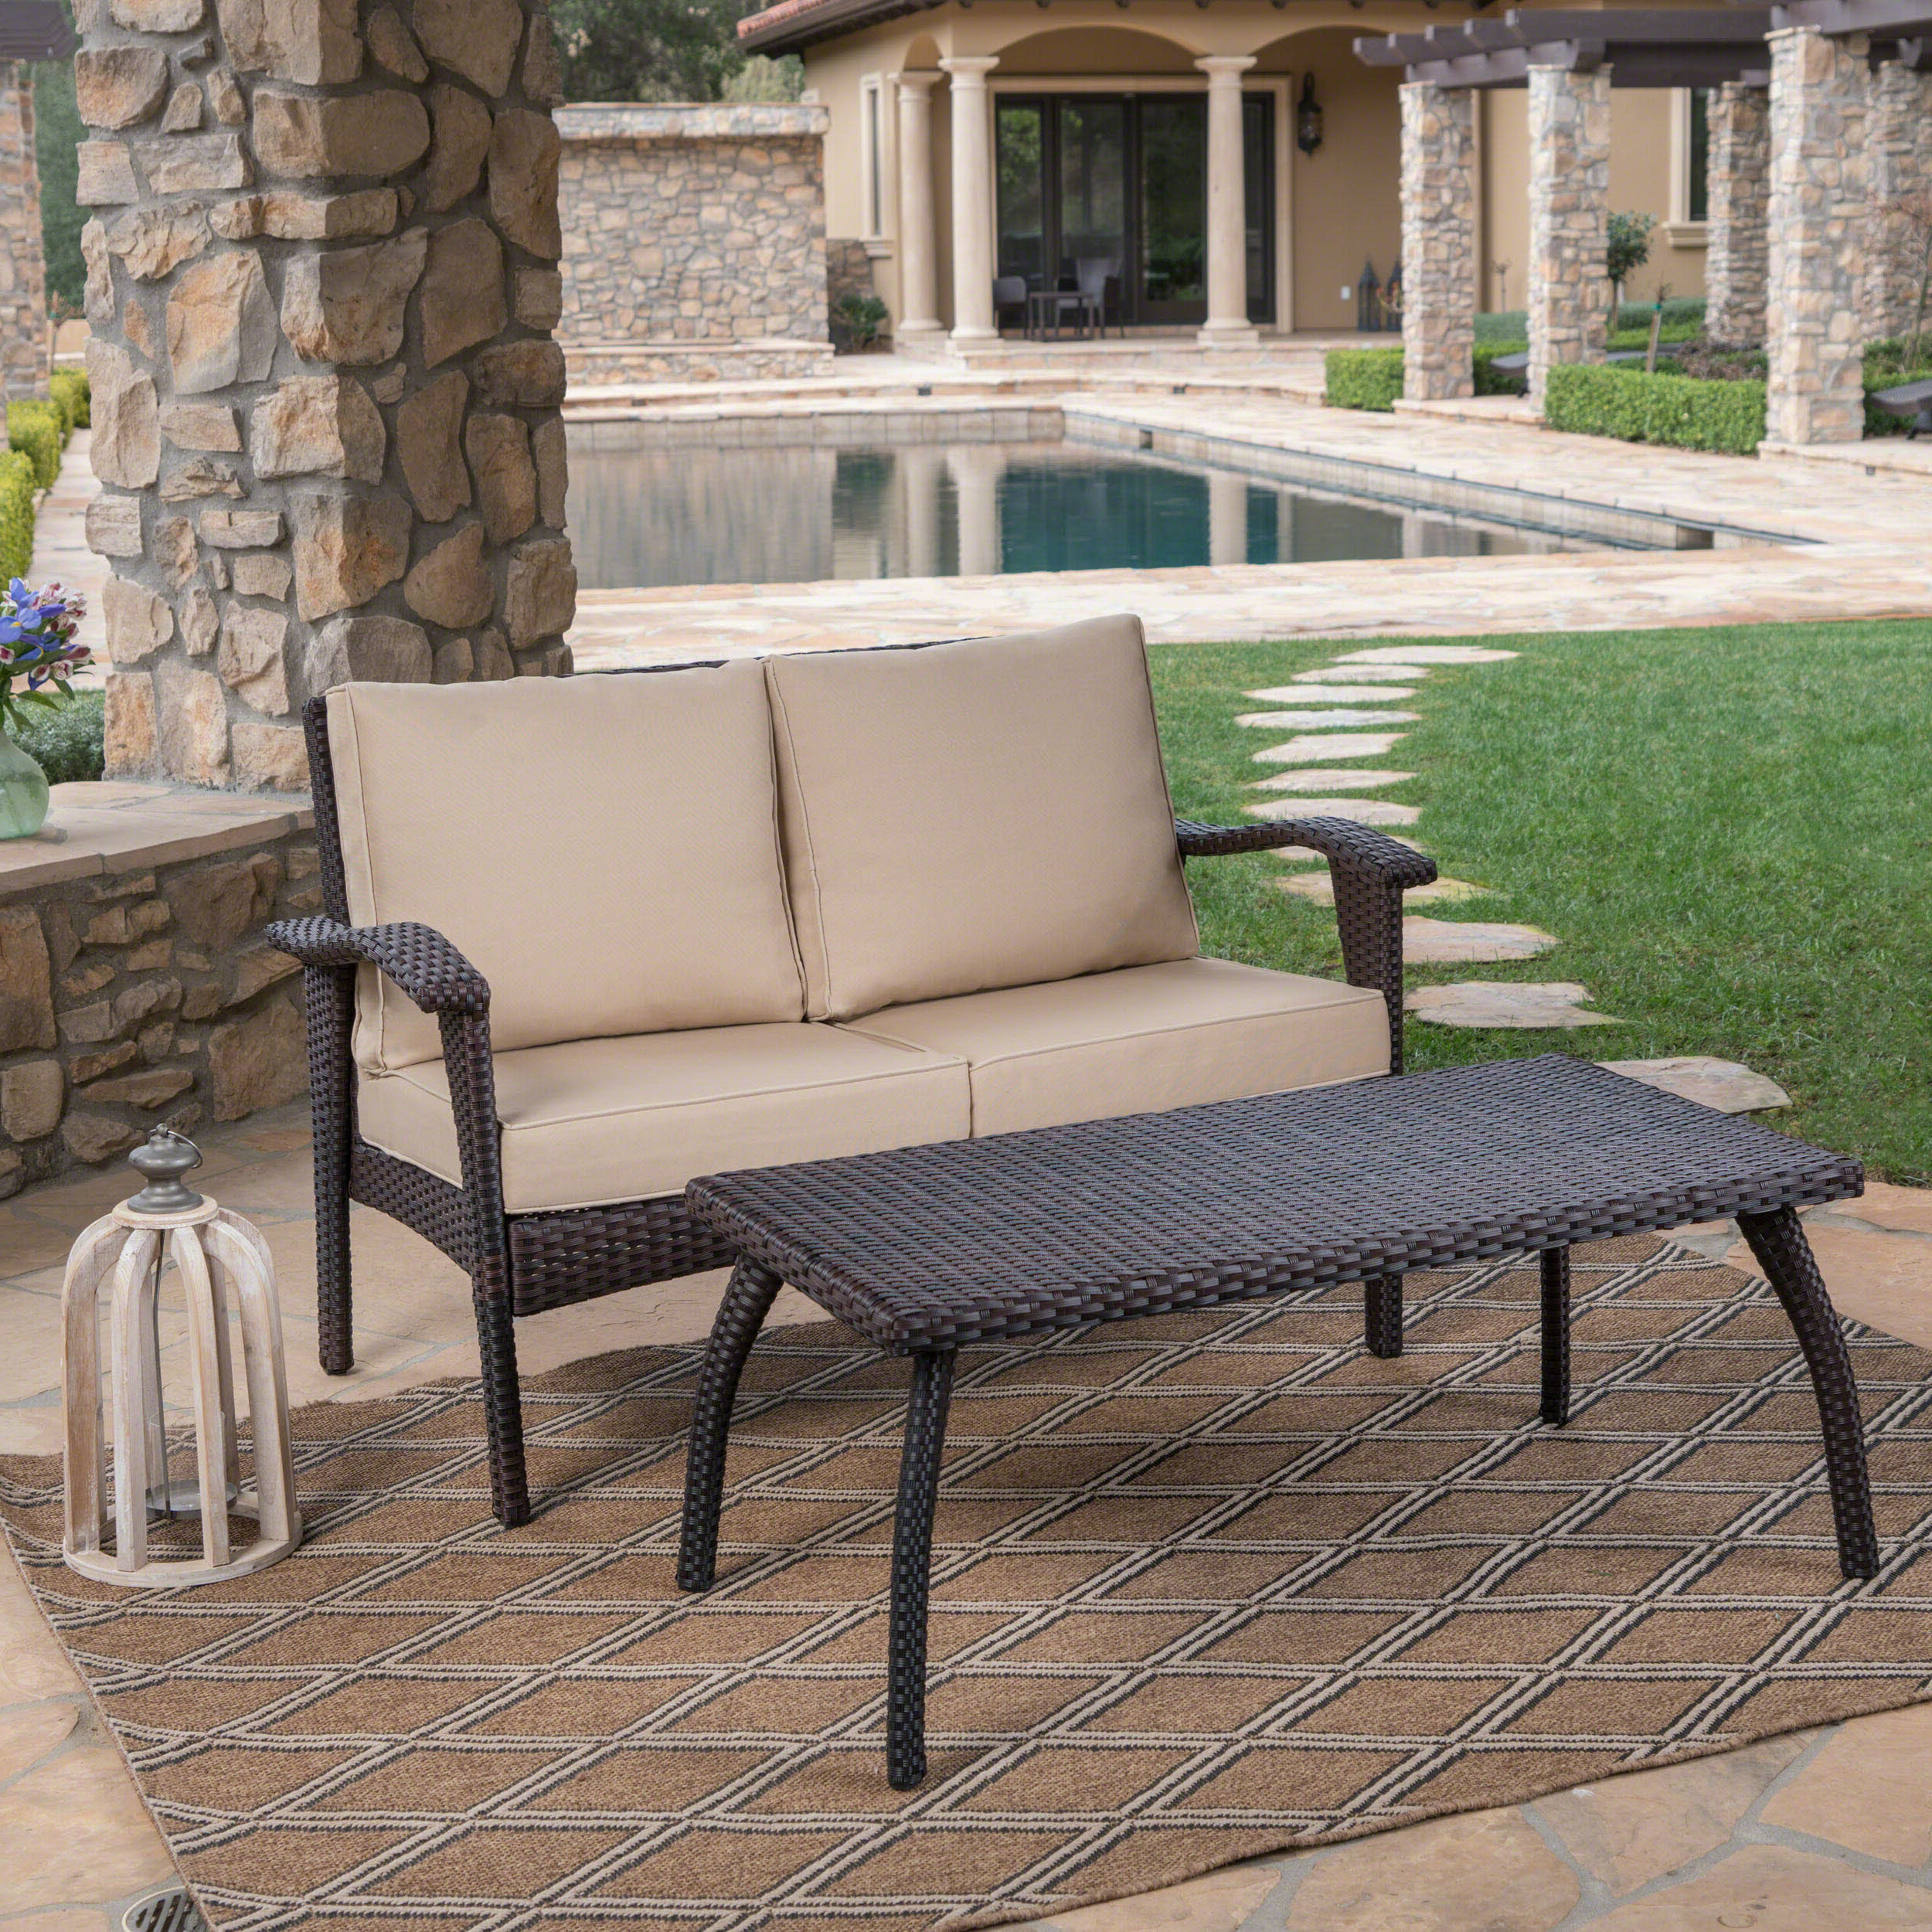 Hagler Outdoor Loveseats With Cushions In Newest Hagler 2 Piece Sofa Seating Group With Cushions (View 5 of 25)